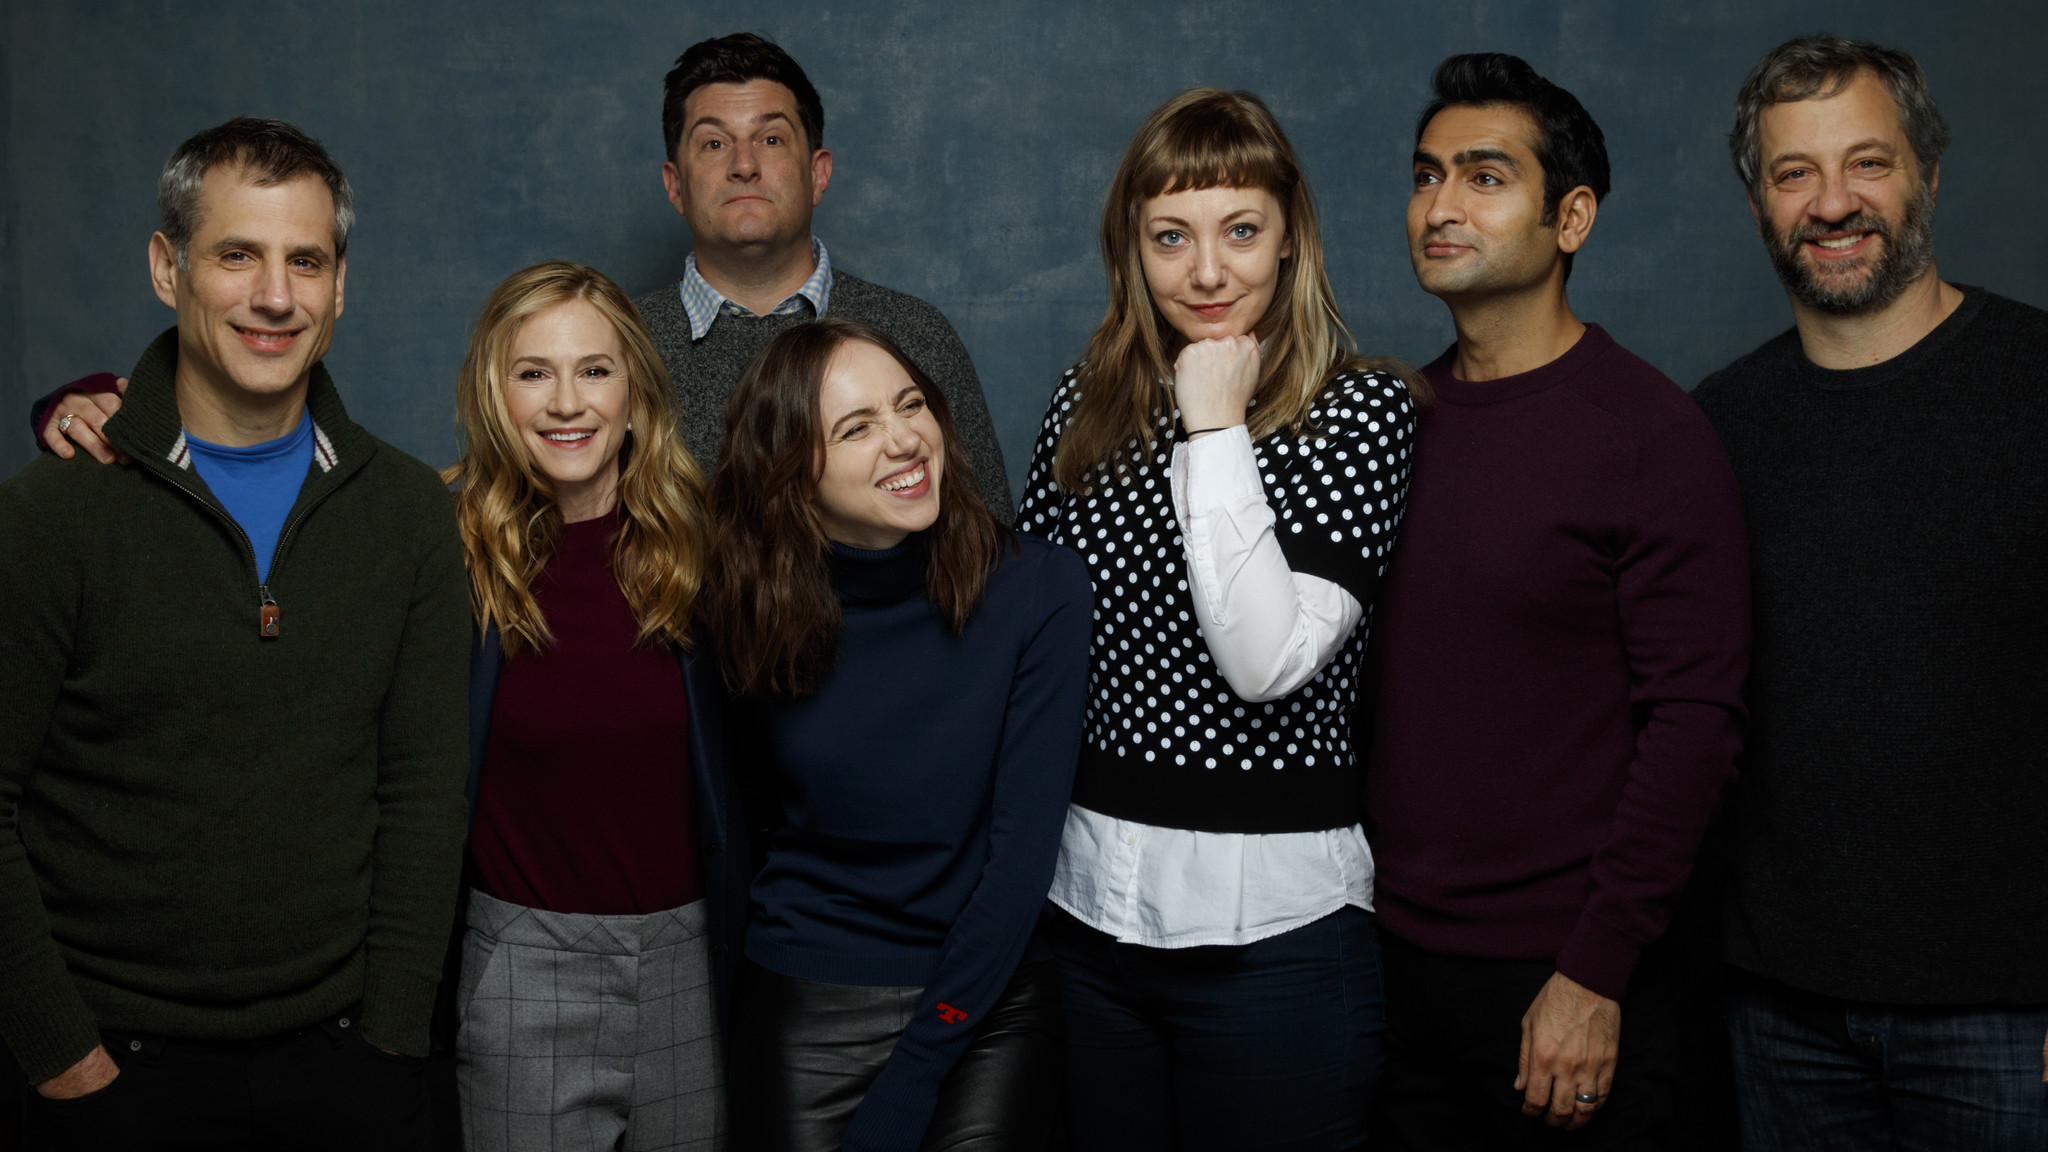 """The Big Sick"" gang at Sundance: From left, producer Barry Mendel, actress Holly Hunter, director Michael Showalter, actress Zoe Karan, writer Emily V. Gordon, writer and star Kumail Nanjiani and producer Judd Apatow."